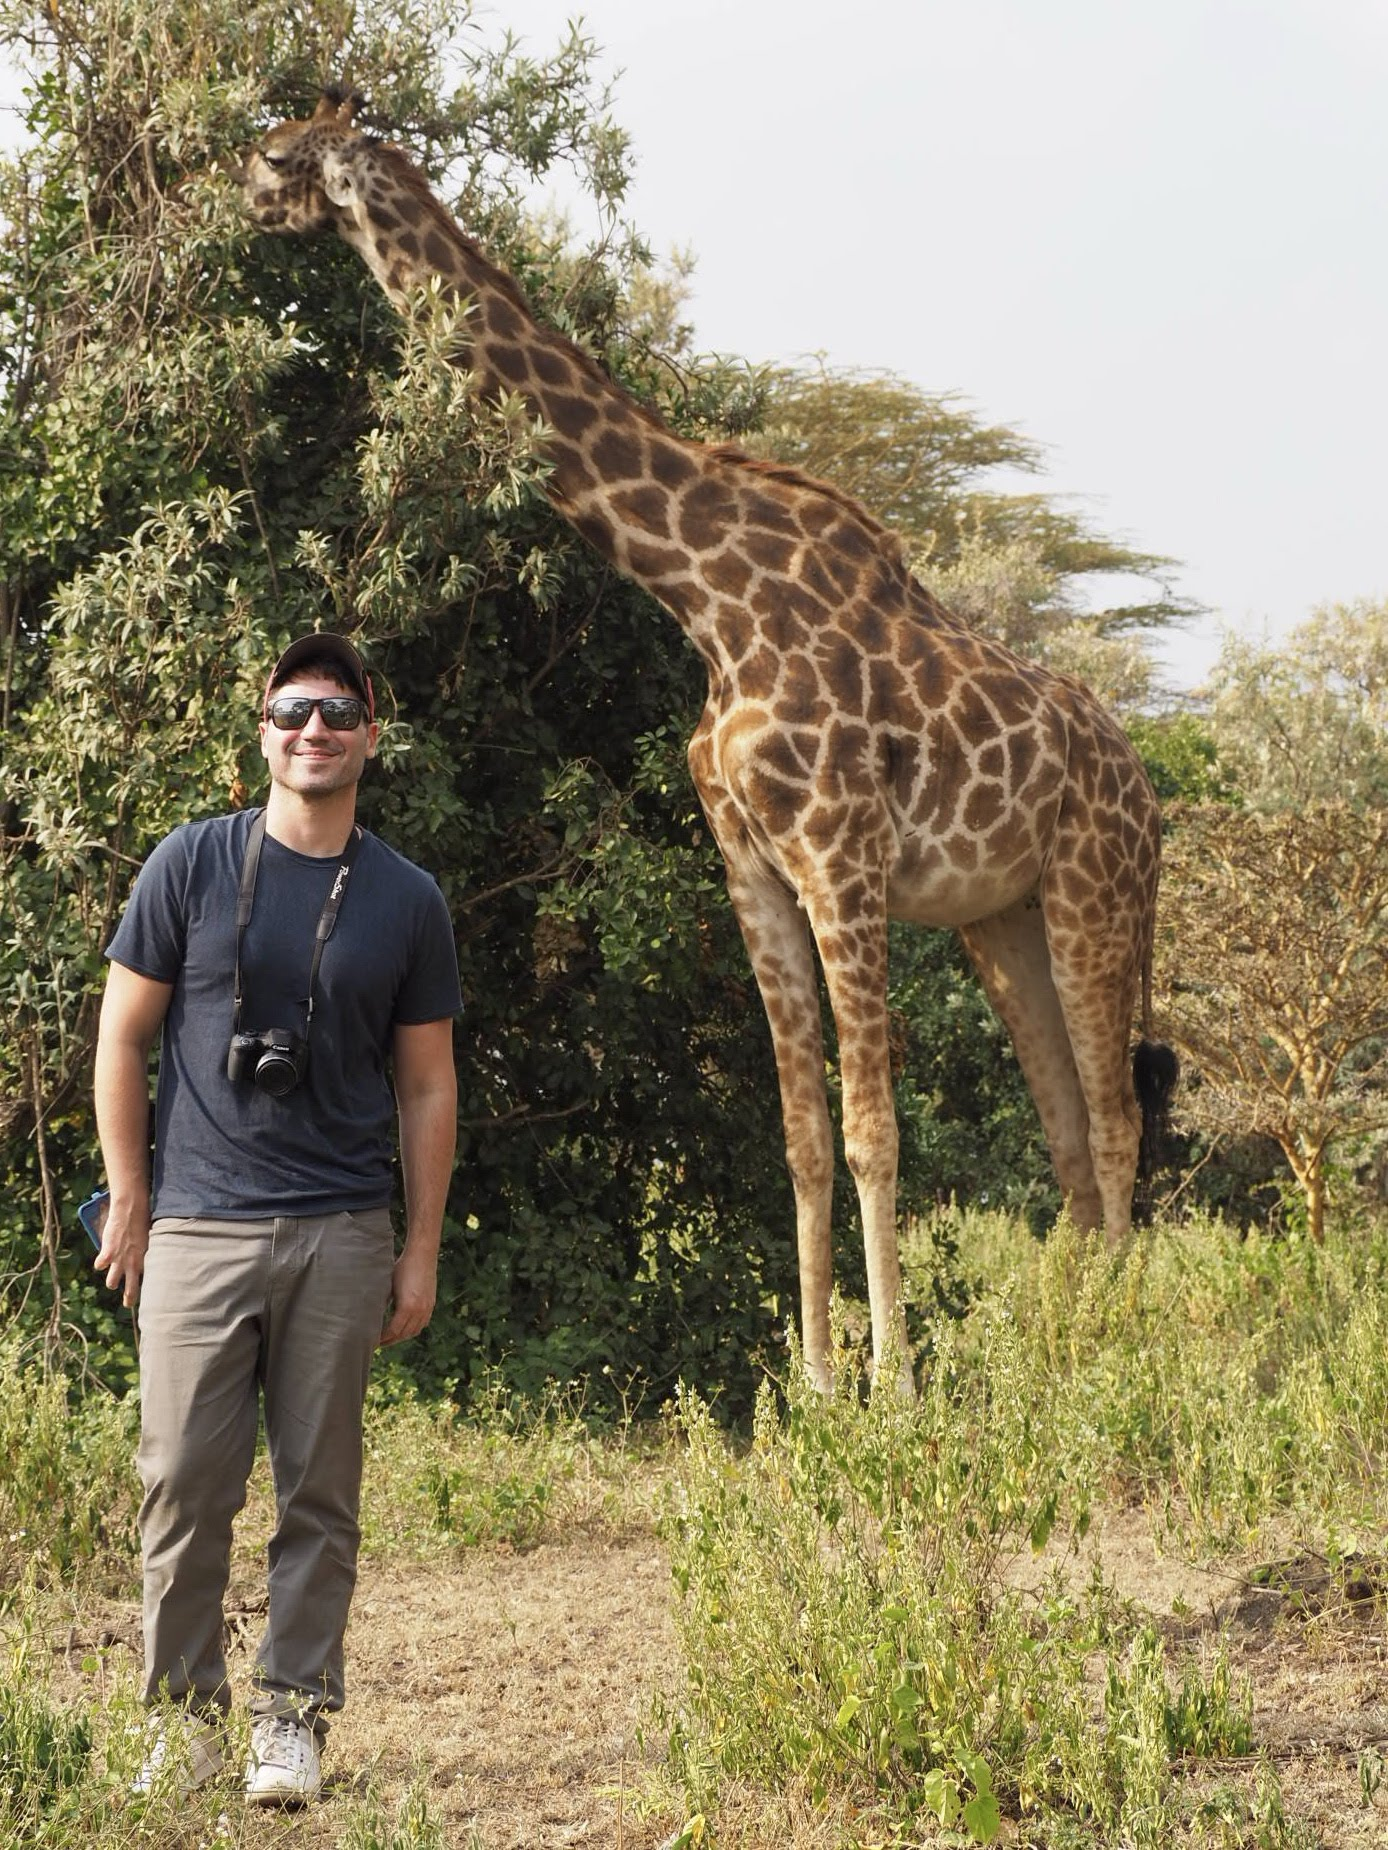 A gay traveller poses in front of a giraffe on Crescent Island.